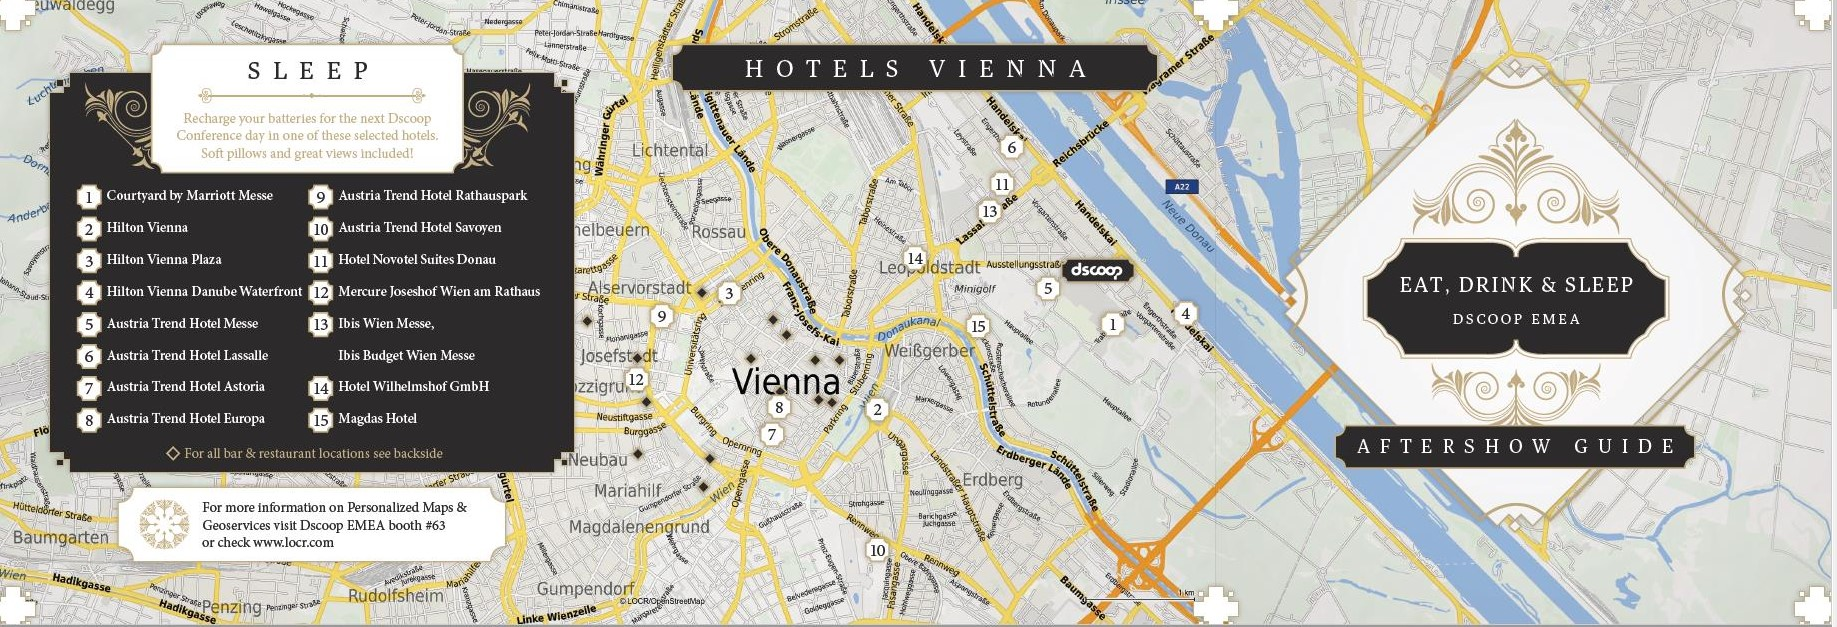 locr geoservices and maps dscoop emea vienna 2018 guide